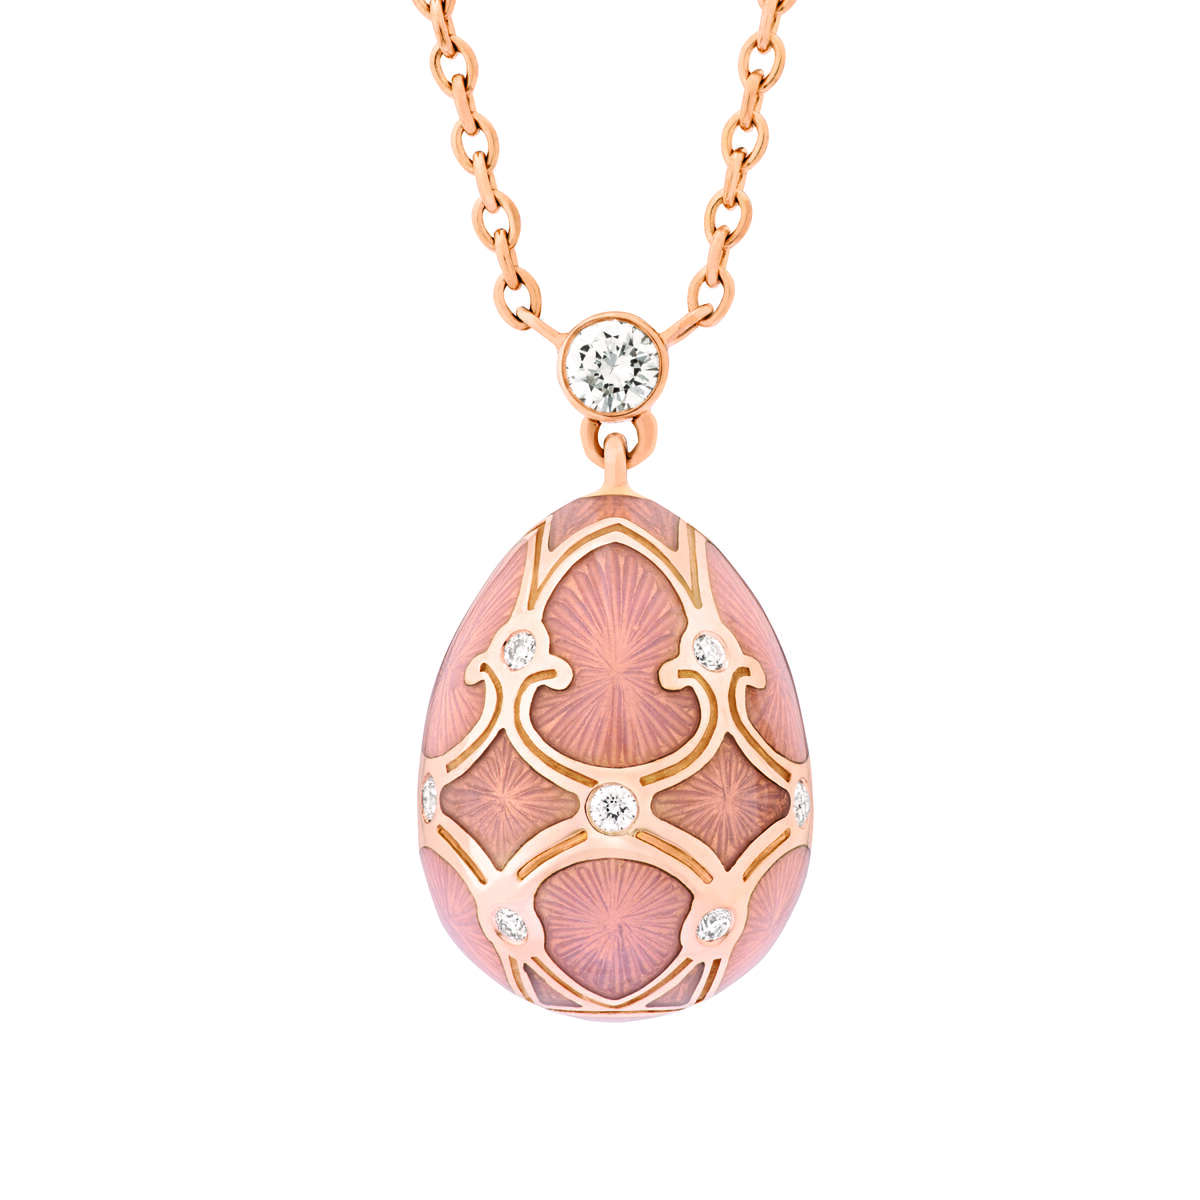 A Fabergé pendant from the Heritage collection.